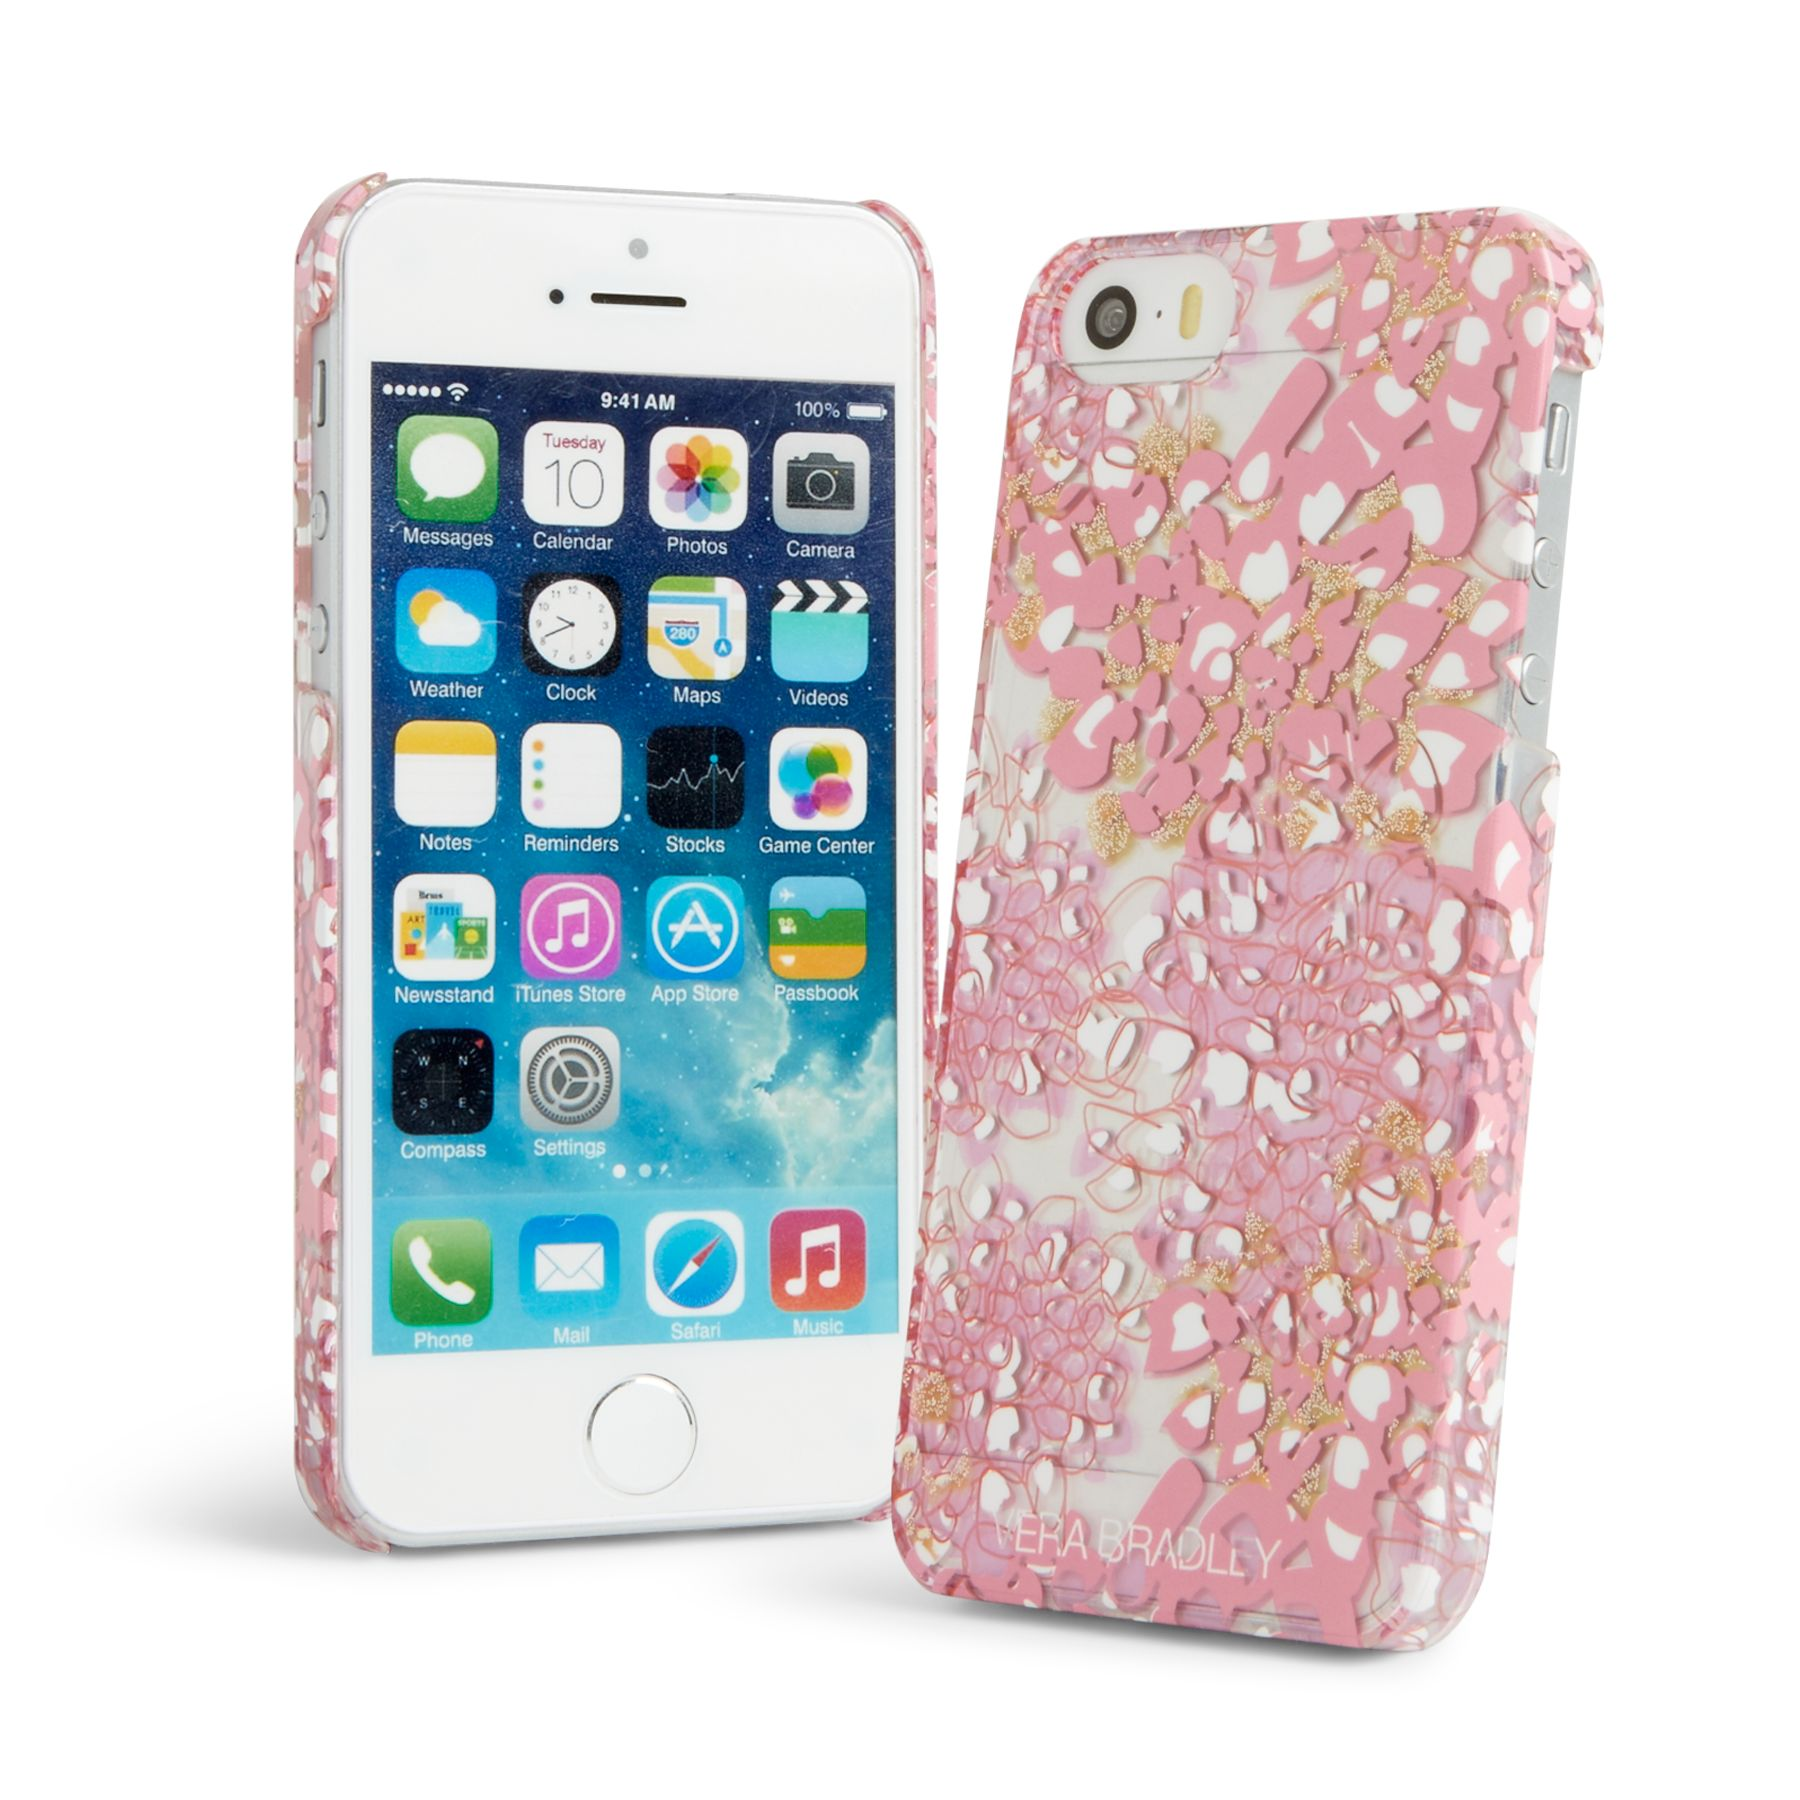 vera bradley iphone 5 case vera bradley clear amp chic for iphone 5 in blooms pink 18147